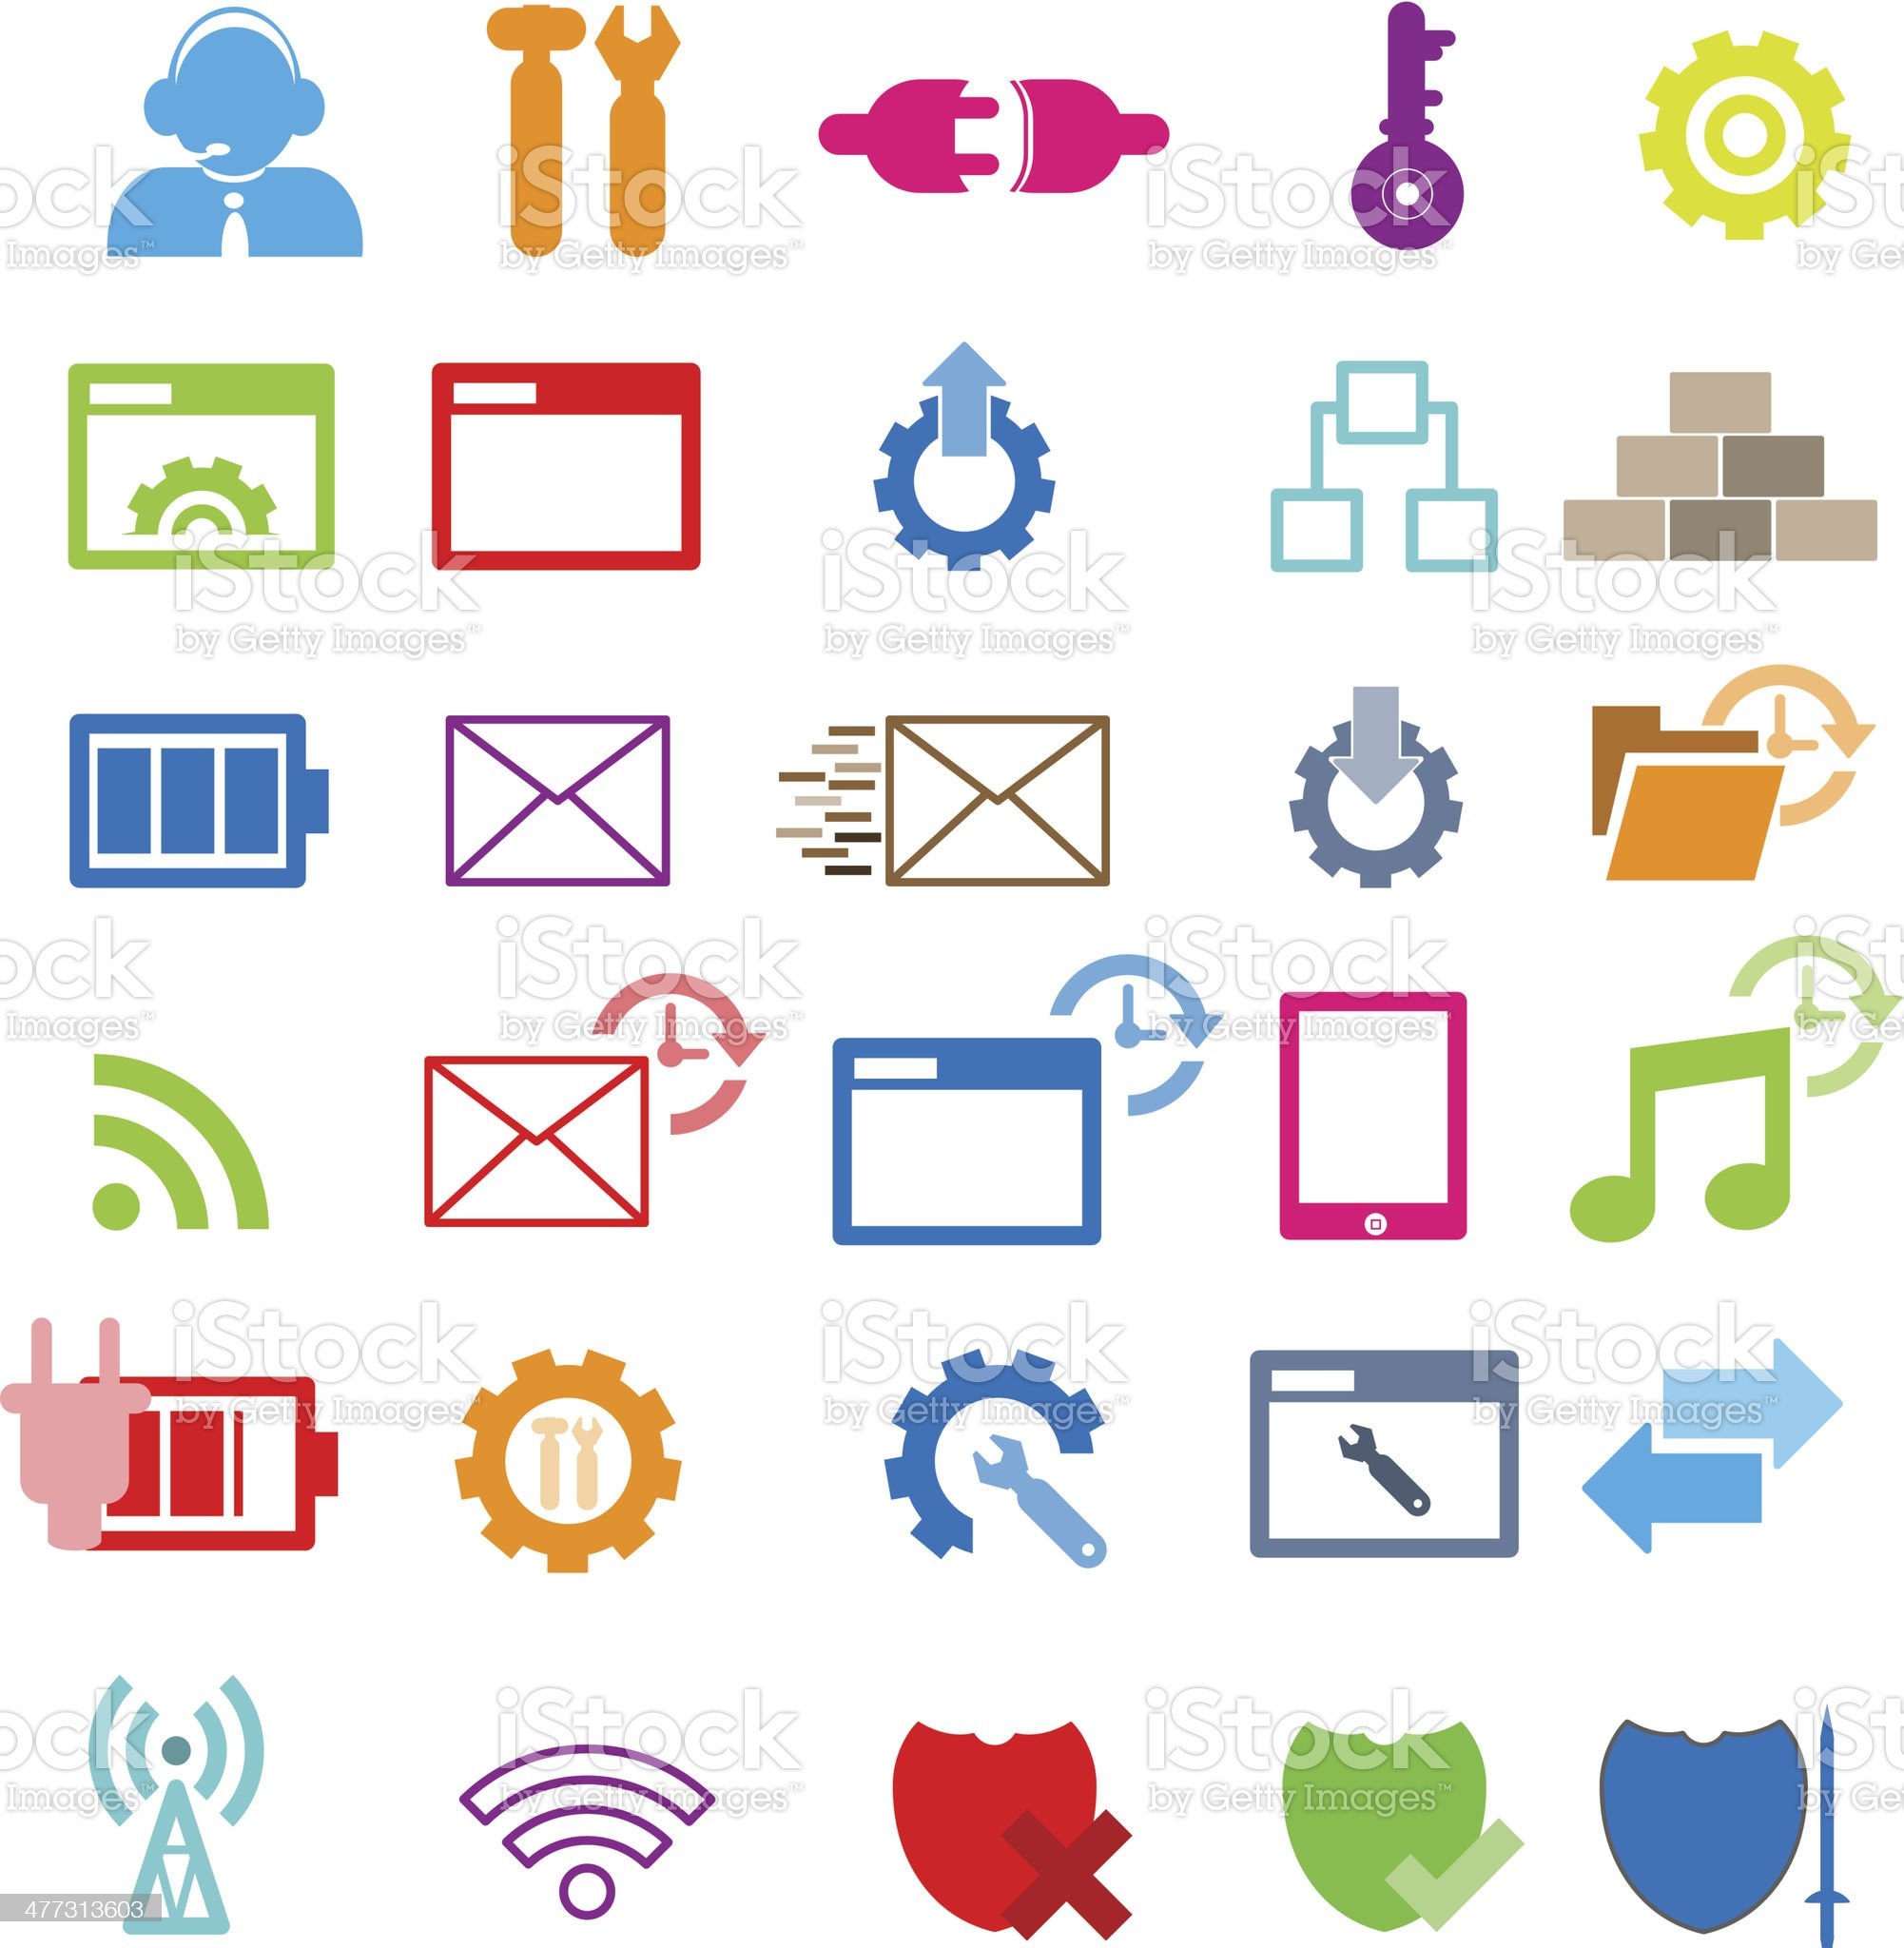 Set of network icons royalty-free stock vector art